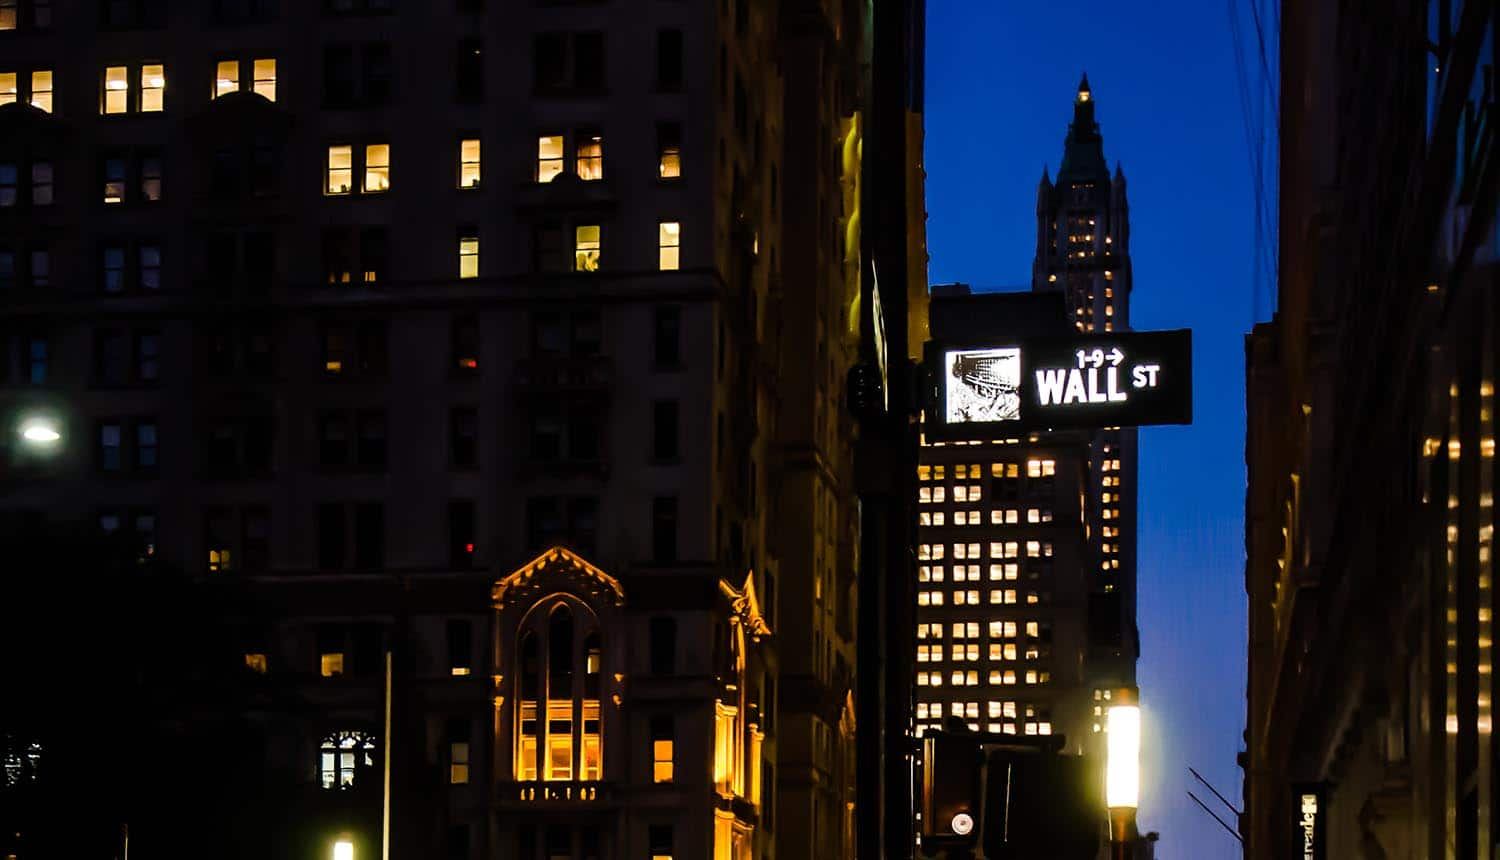 Wall Street signboard in night showing financial services companies lack plans to address privacy risks